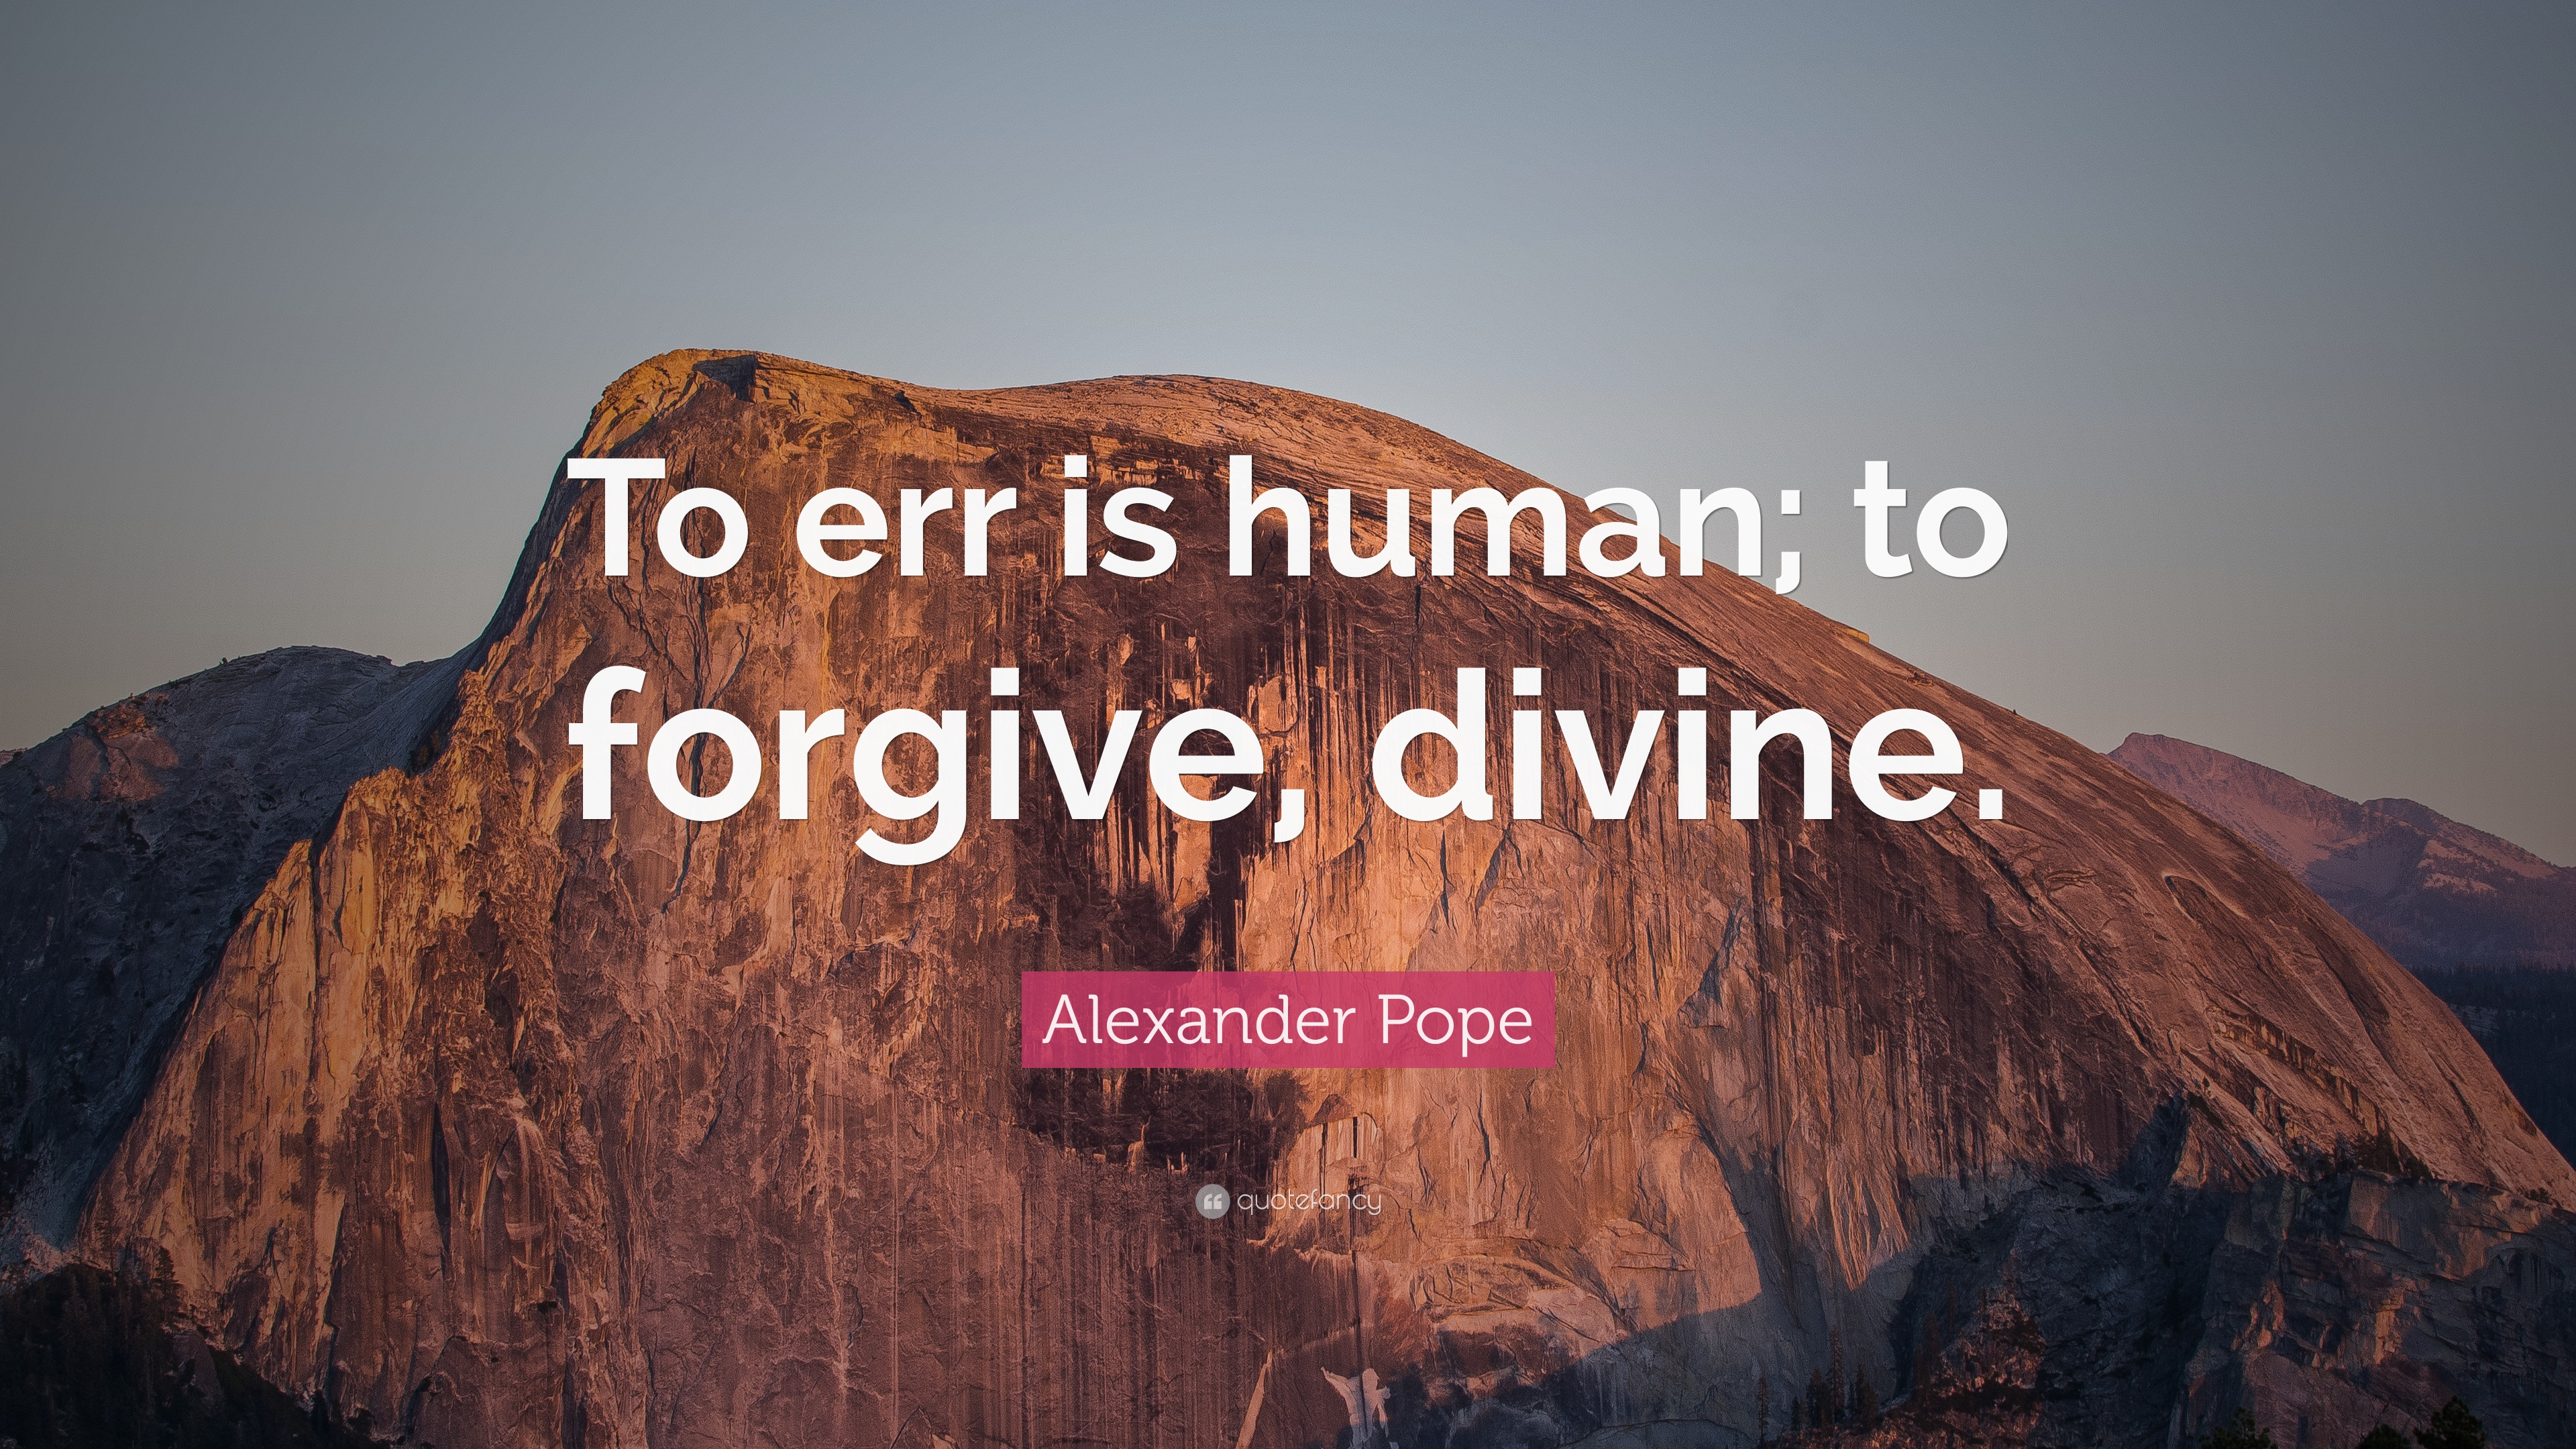 Alexander Pope Quote: To err is human; to forgive, divine